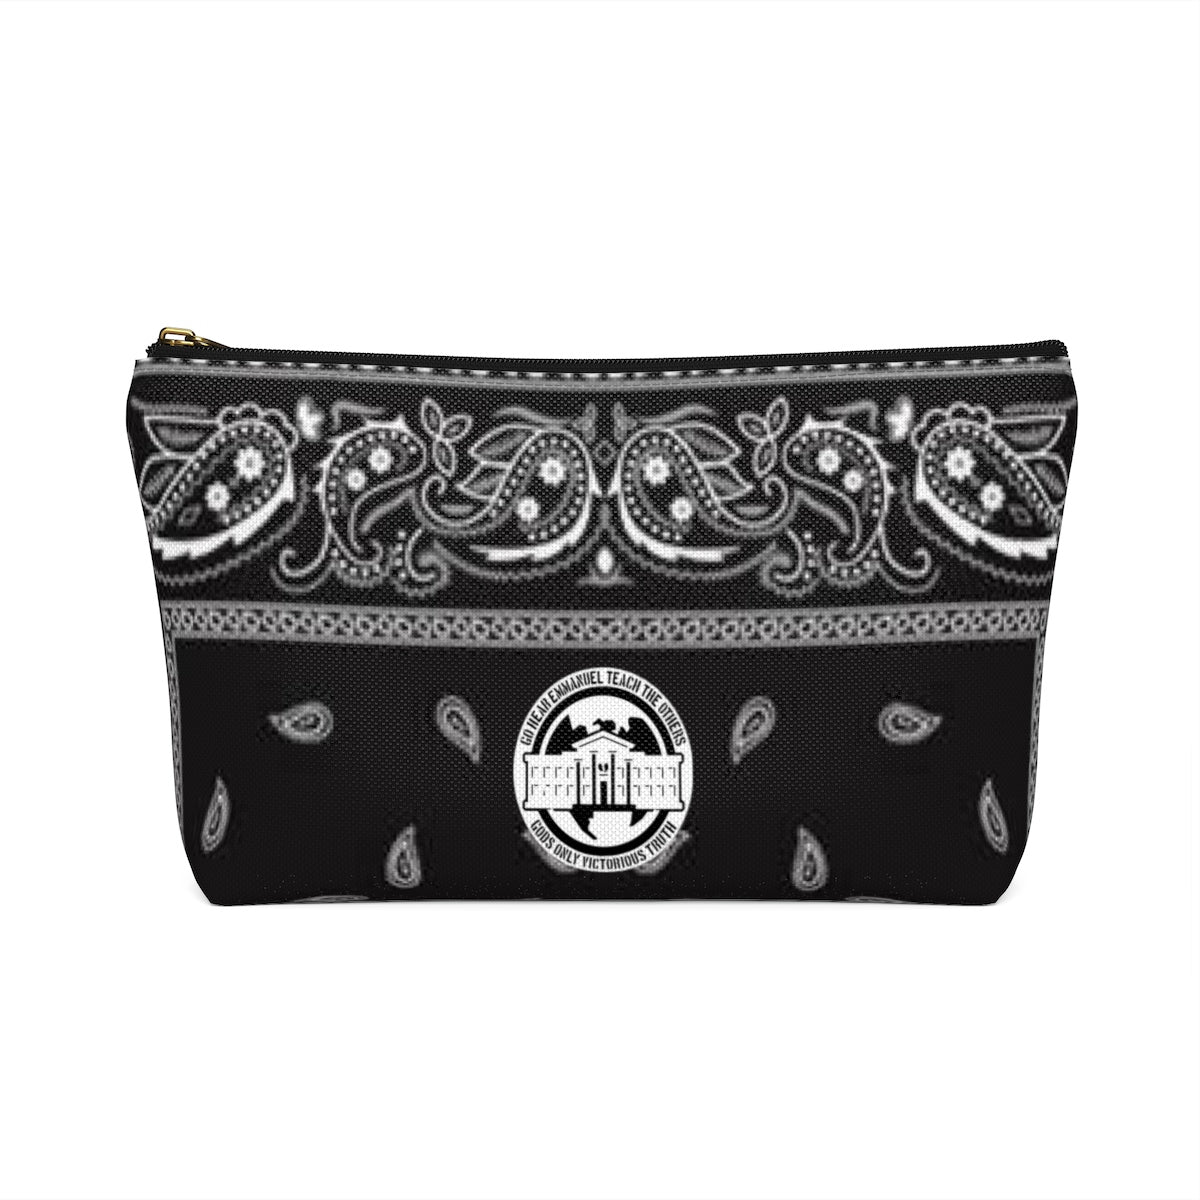 Ghetto Gov't Officialz Blanck Bandana Logo Designer Cosmetic Bag - Accessory Pouch w T-bottom HeavenRazah - HellRazah Merchandise